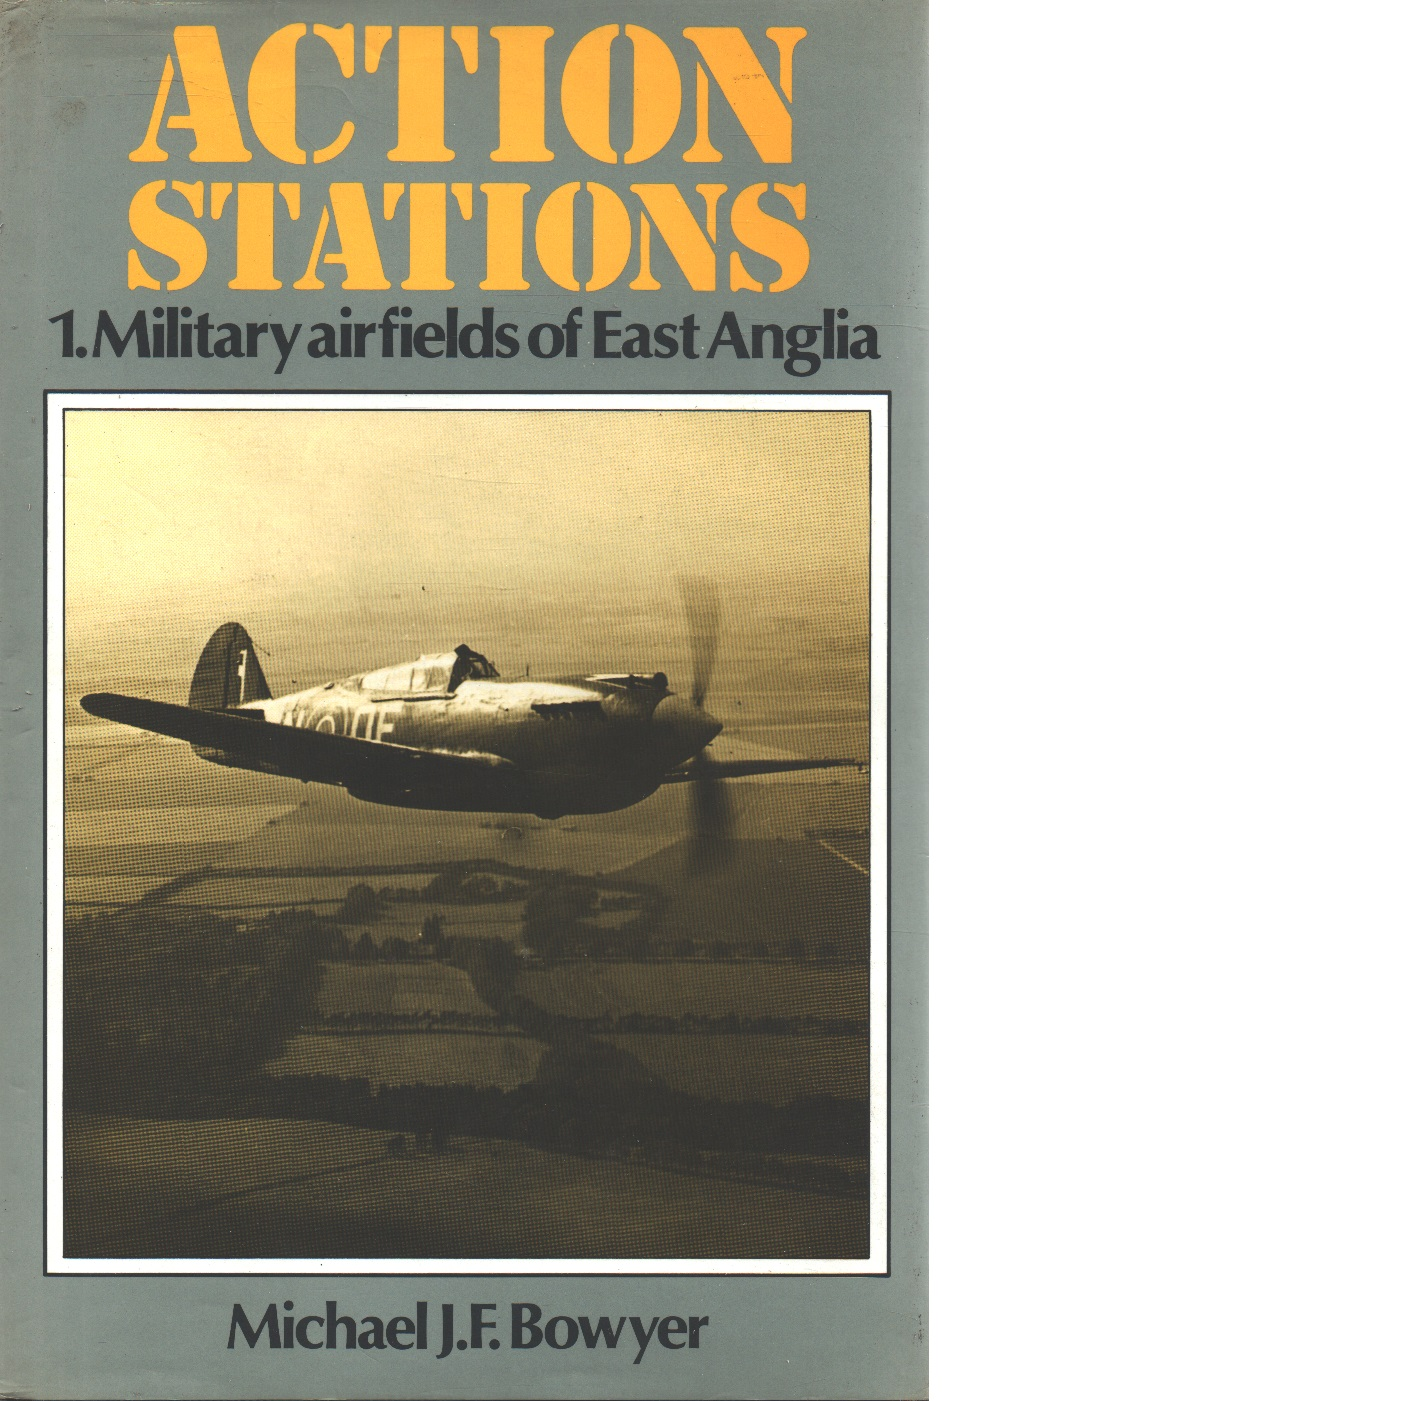 Action Stations 1: Military airfields of East Anglia (v. 1) - Bowyer, Michael J.F.